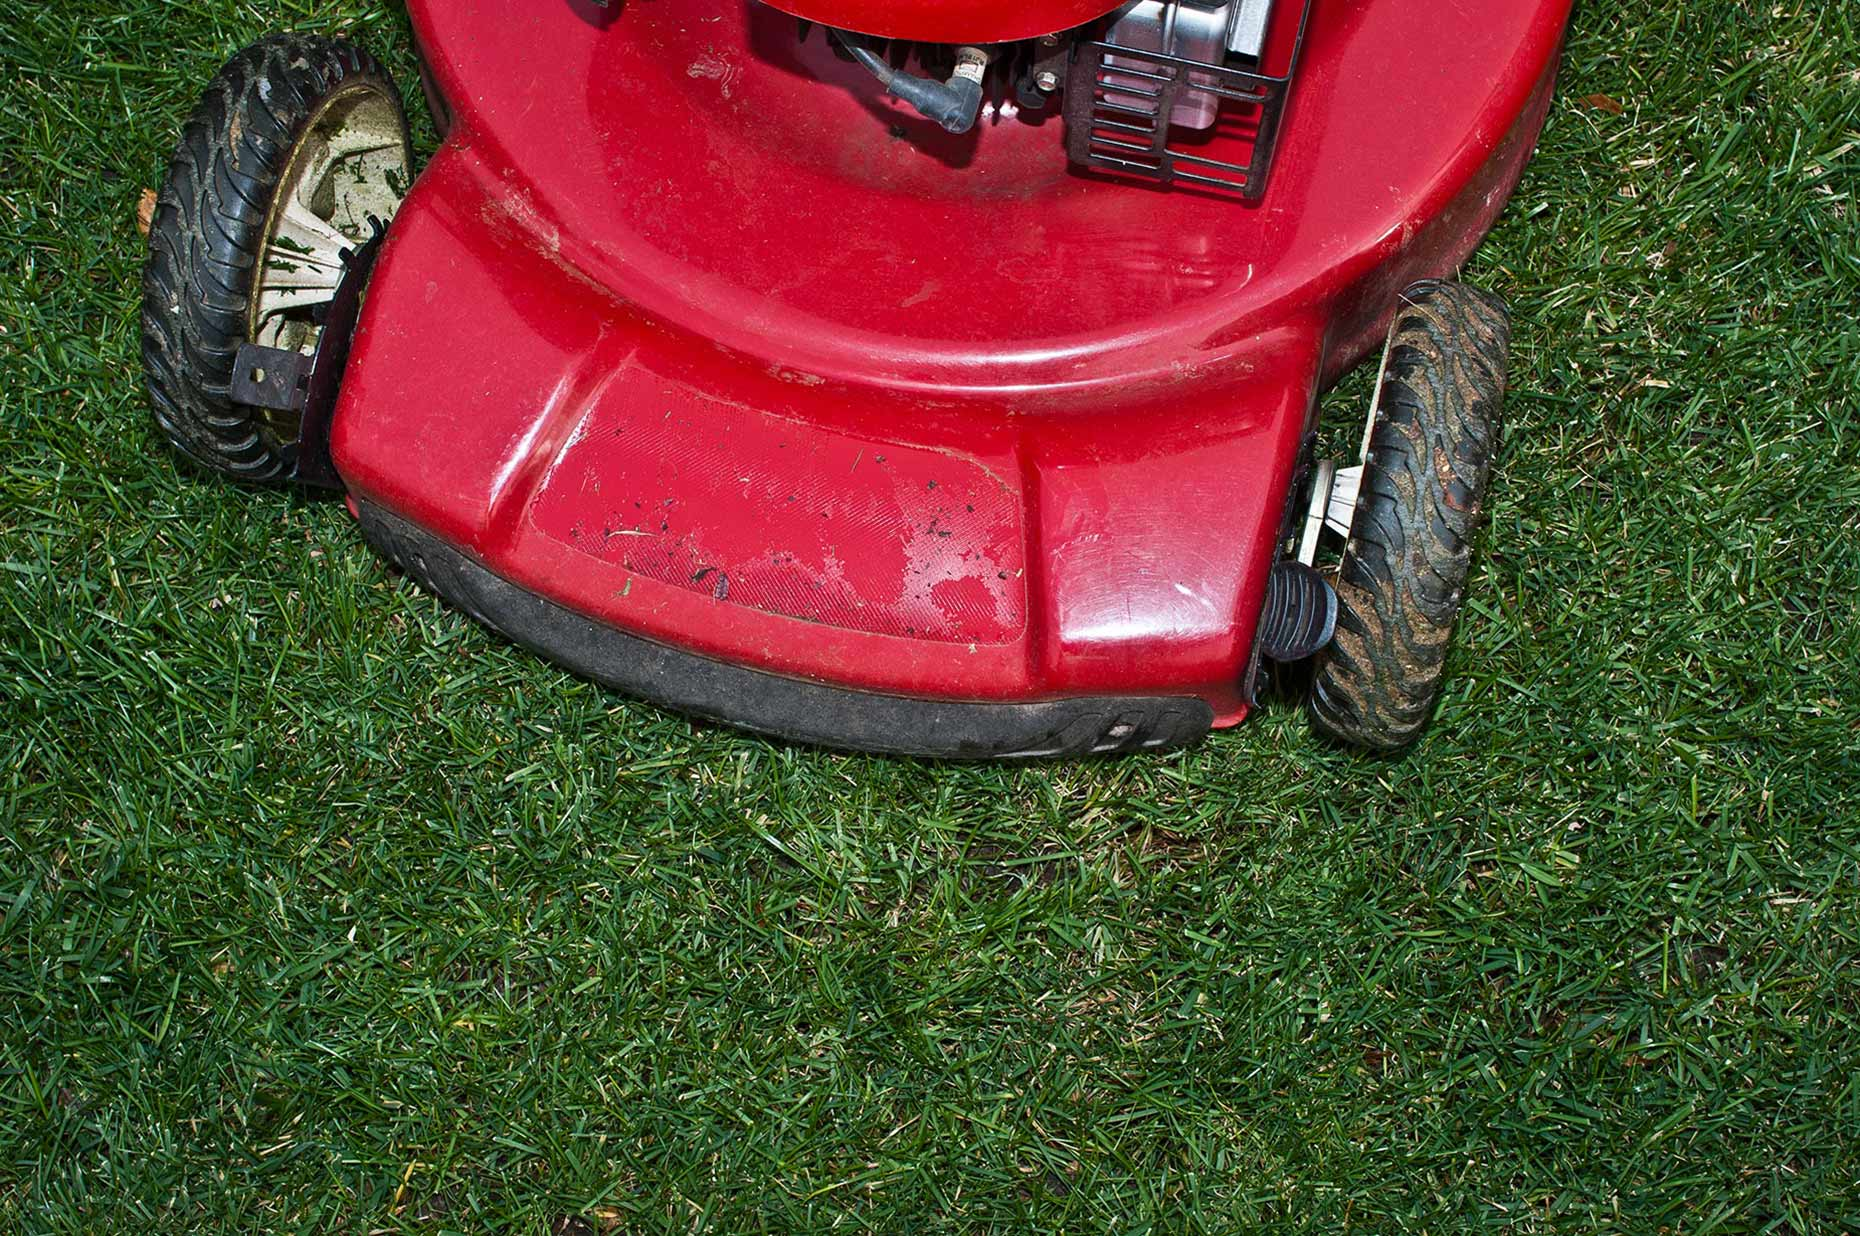 _Aaron_Lindberg_Lawnmower_01